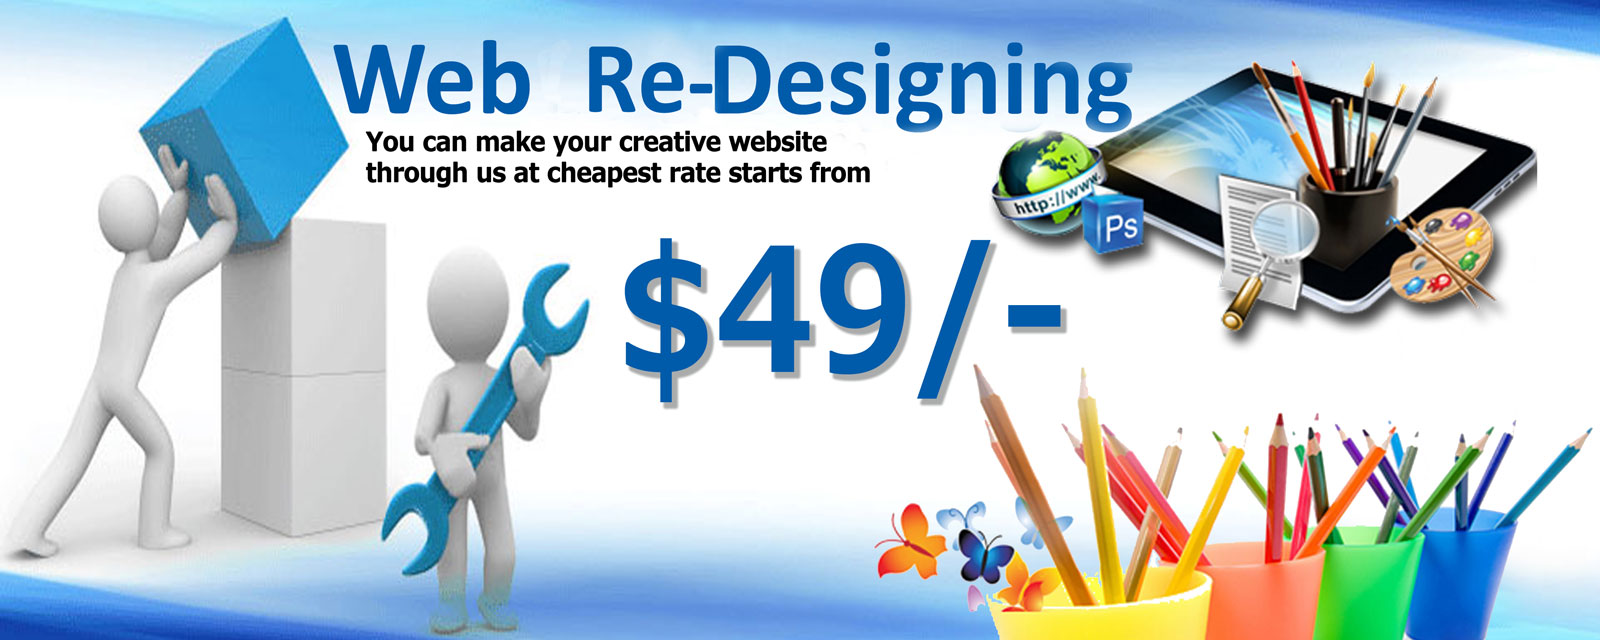 Website Re-Design company in delhi